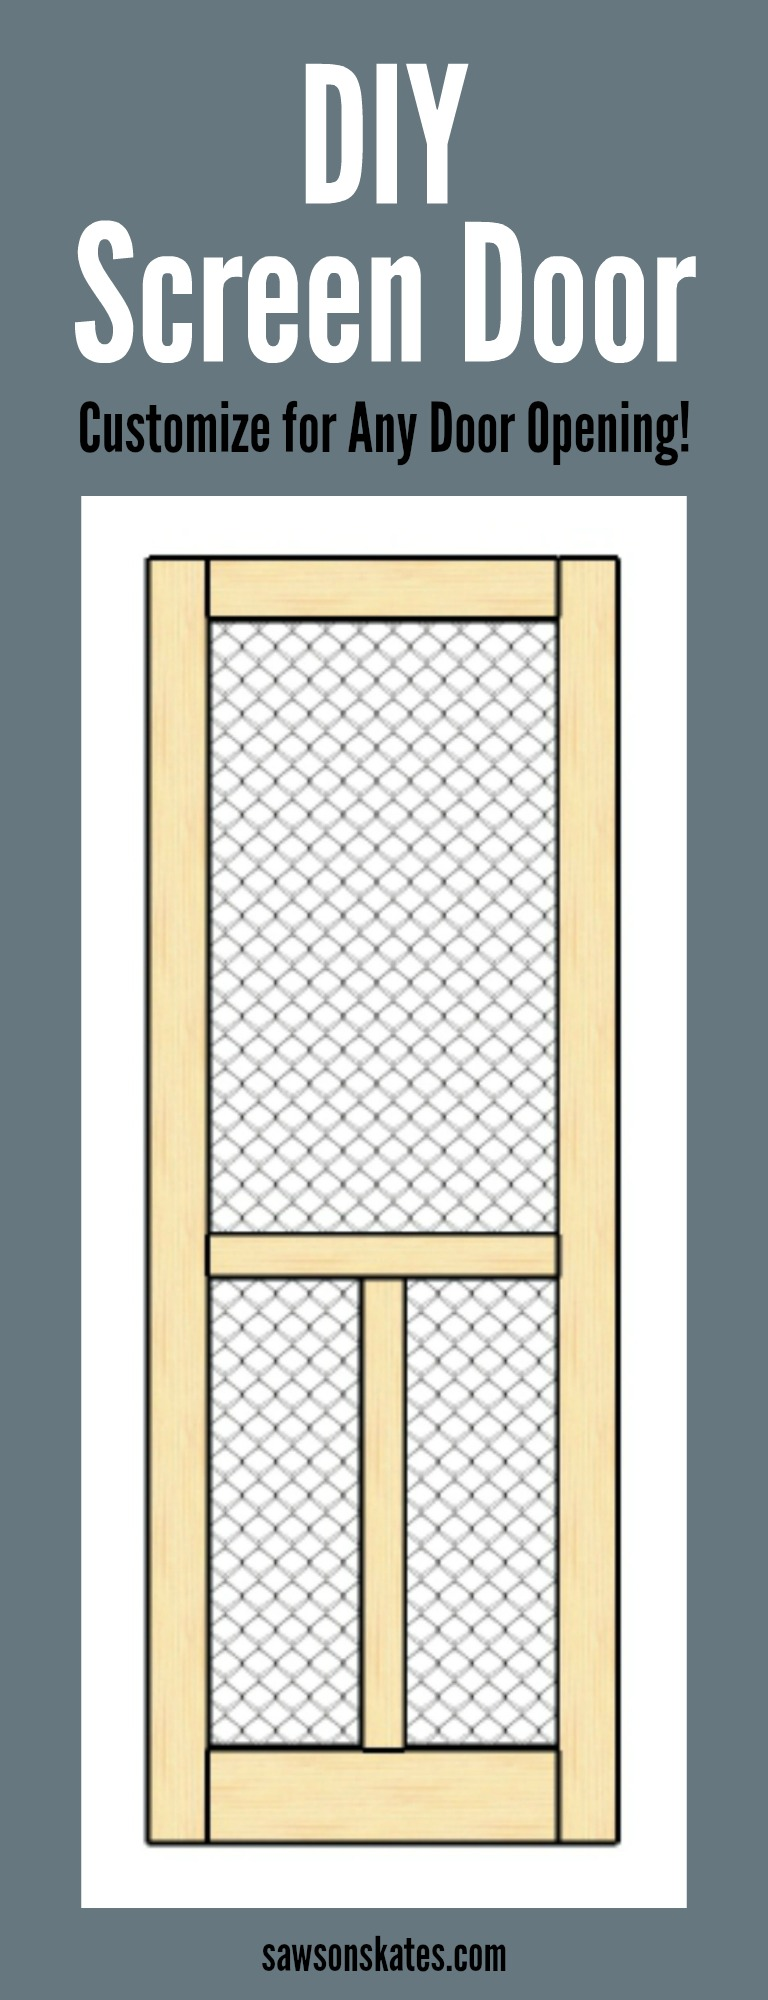 DIY Wood Screen Door Wooden Screen Door Diy on